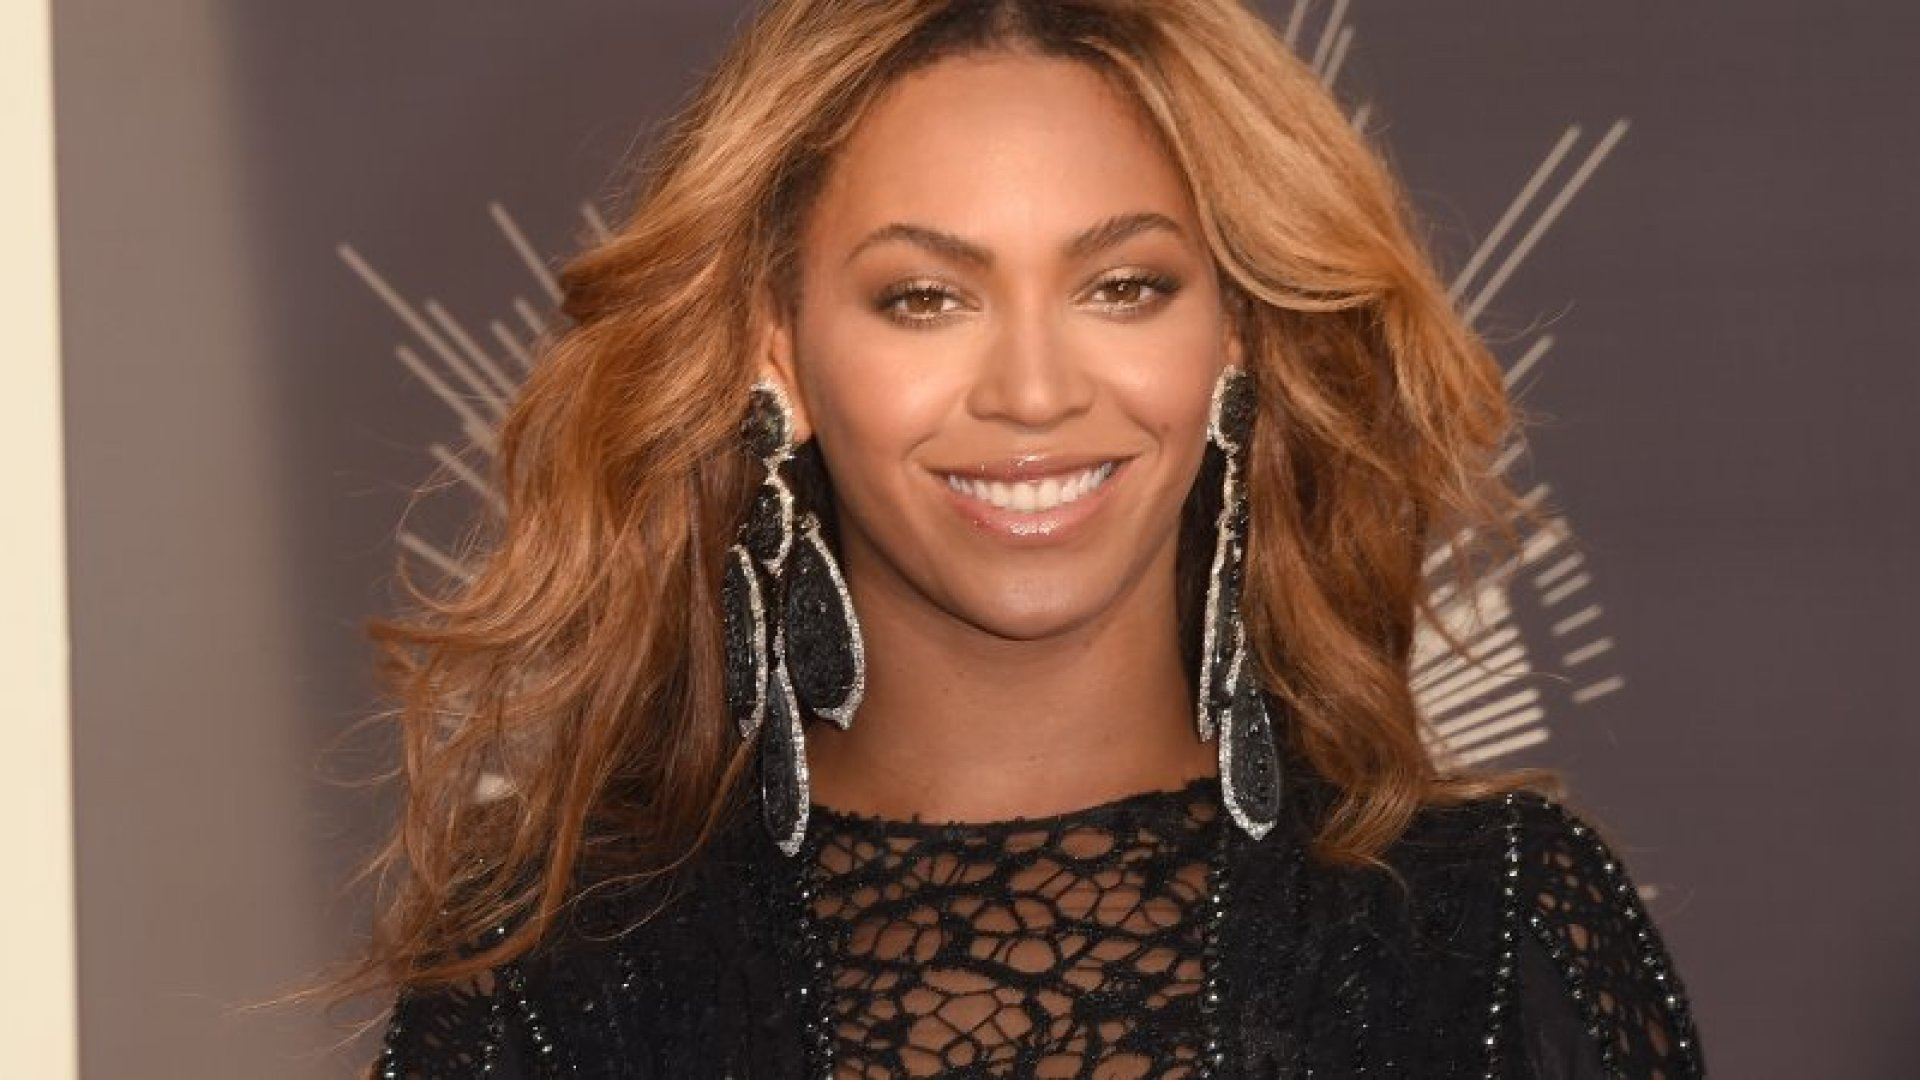 Beyonce Launches an On-Demand Vegan Meal Service